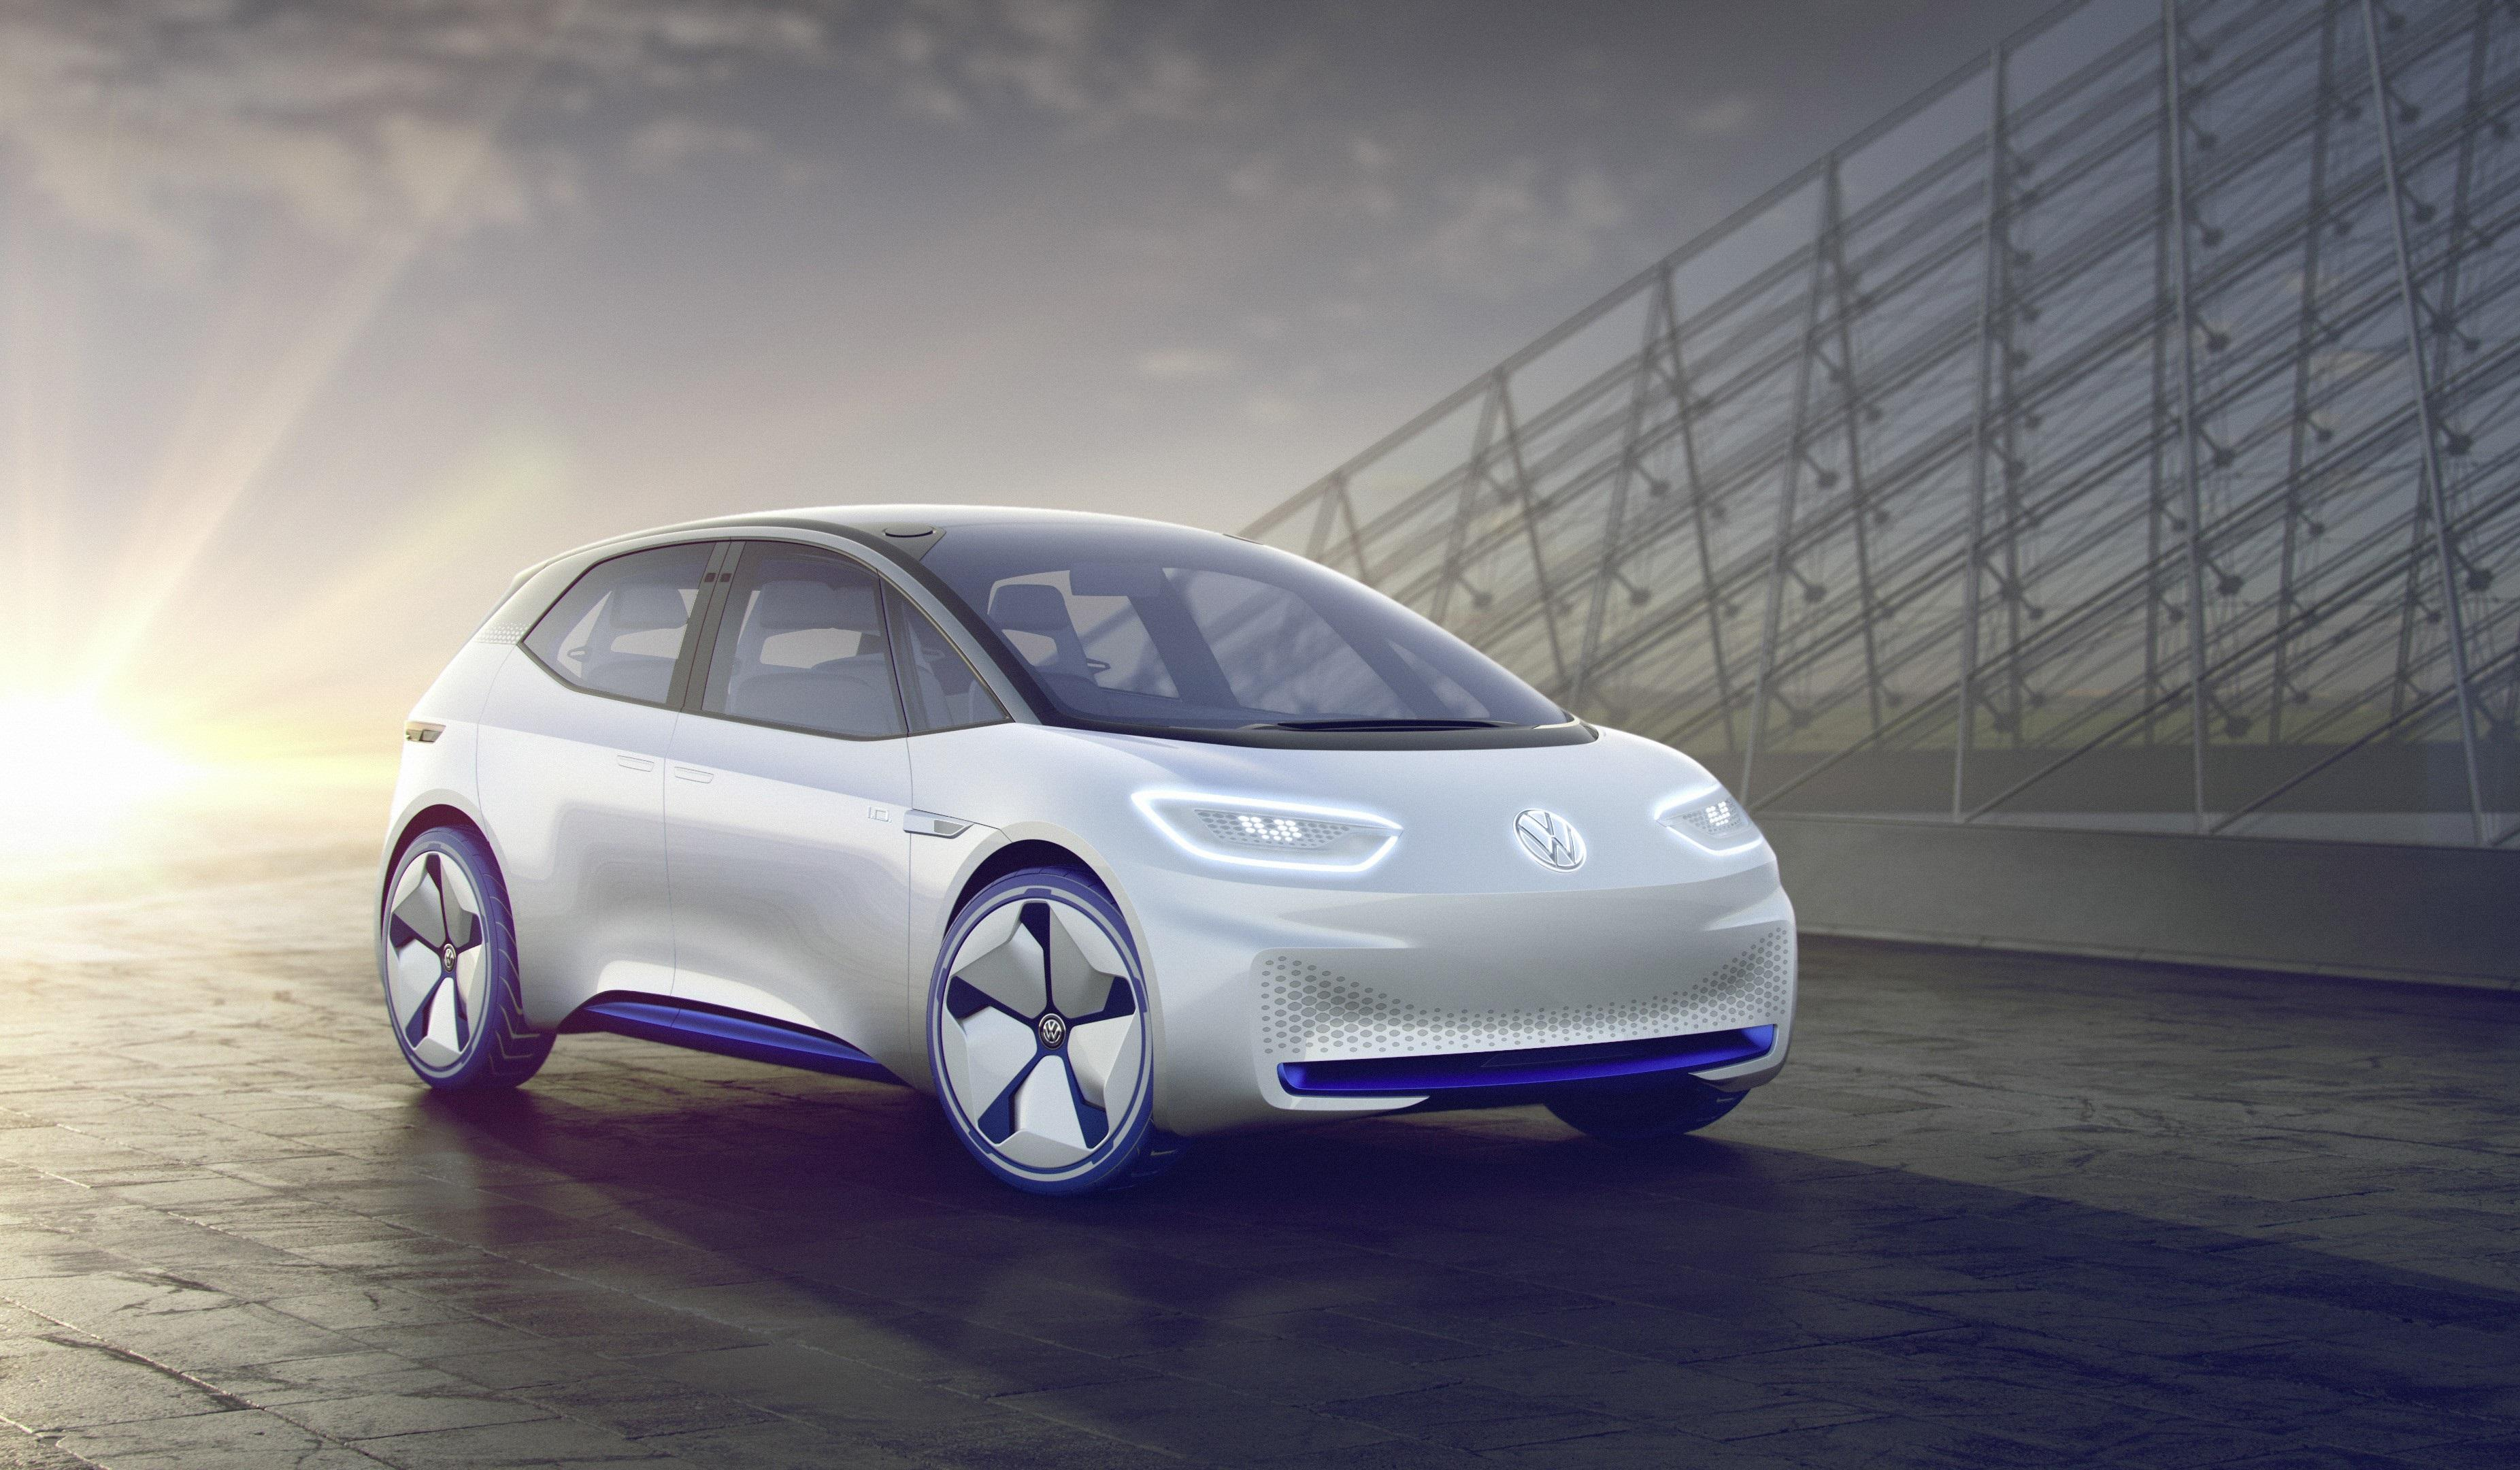 Wallpapers Volkswagen I.D, Electric Cars, 2017 Cars, 4K, Automotive